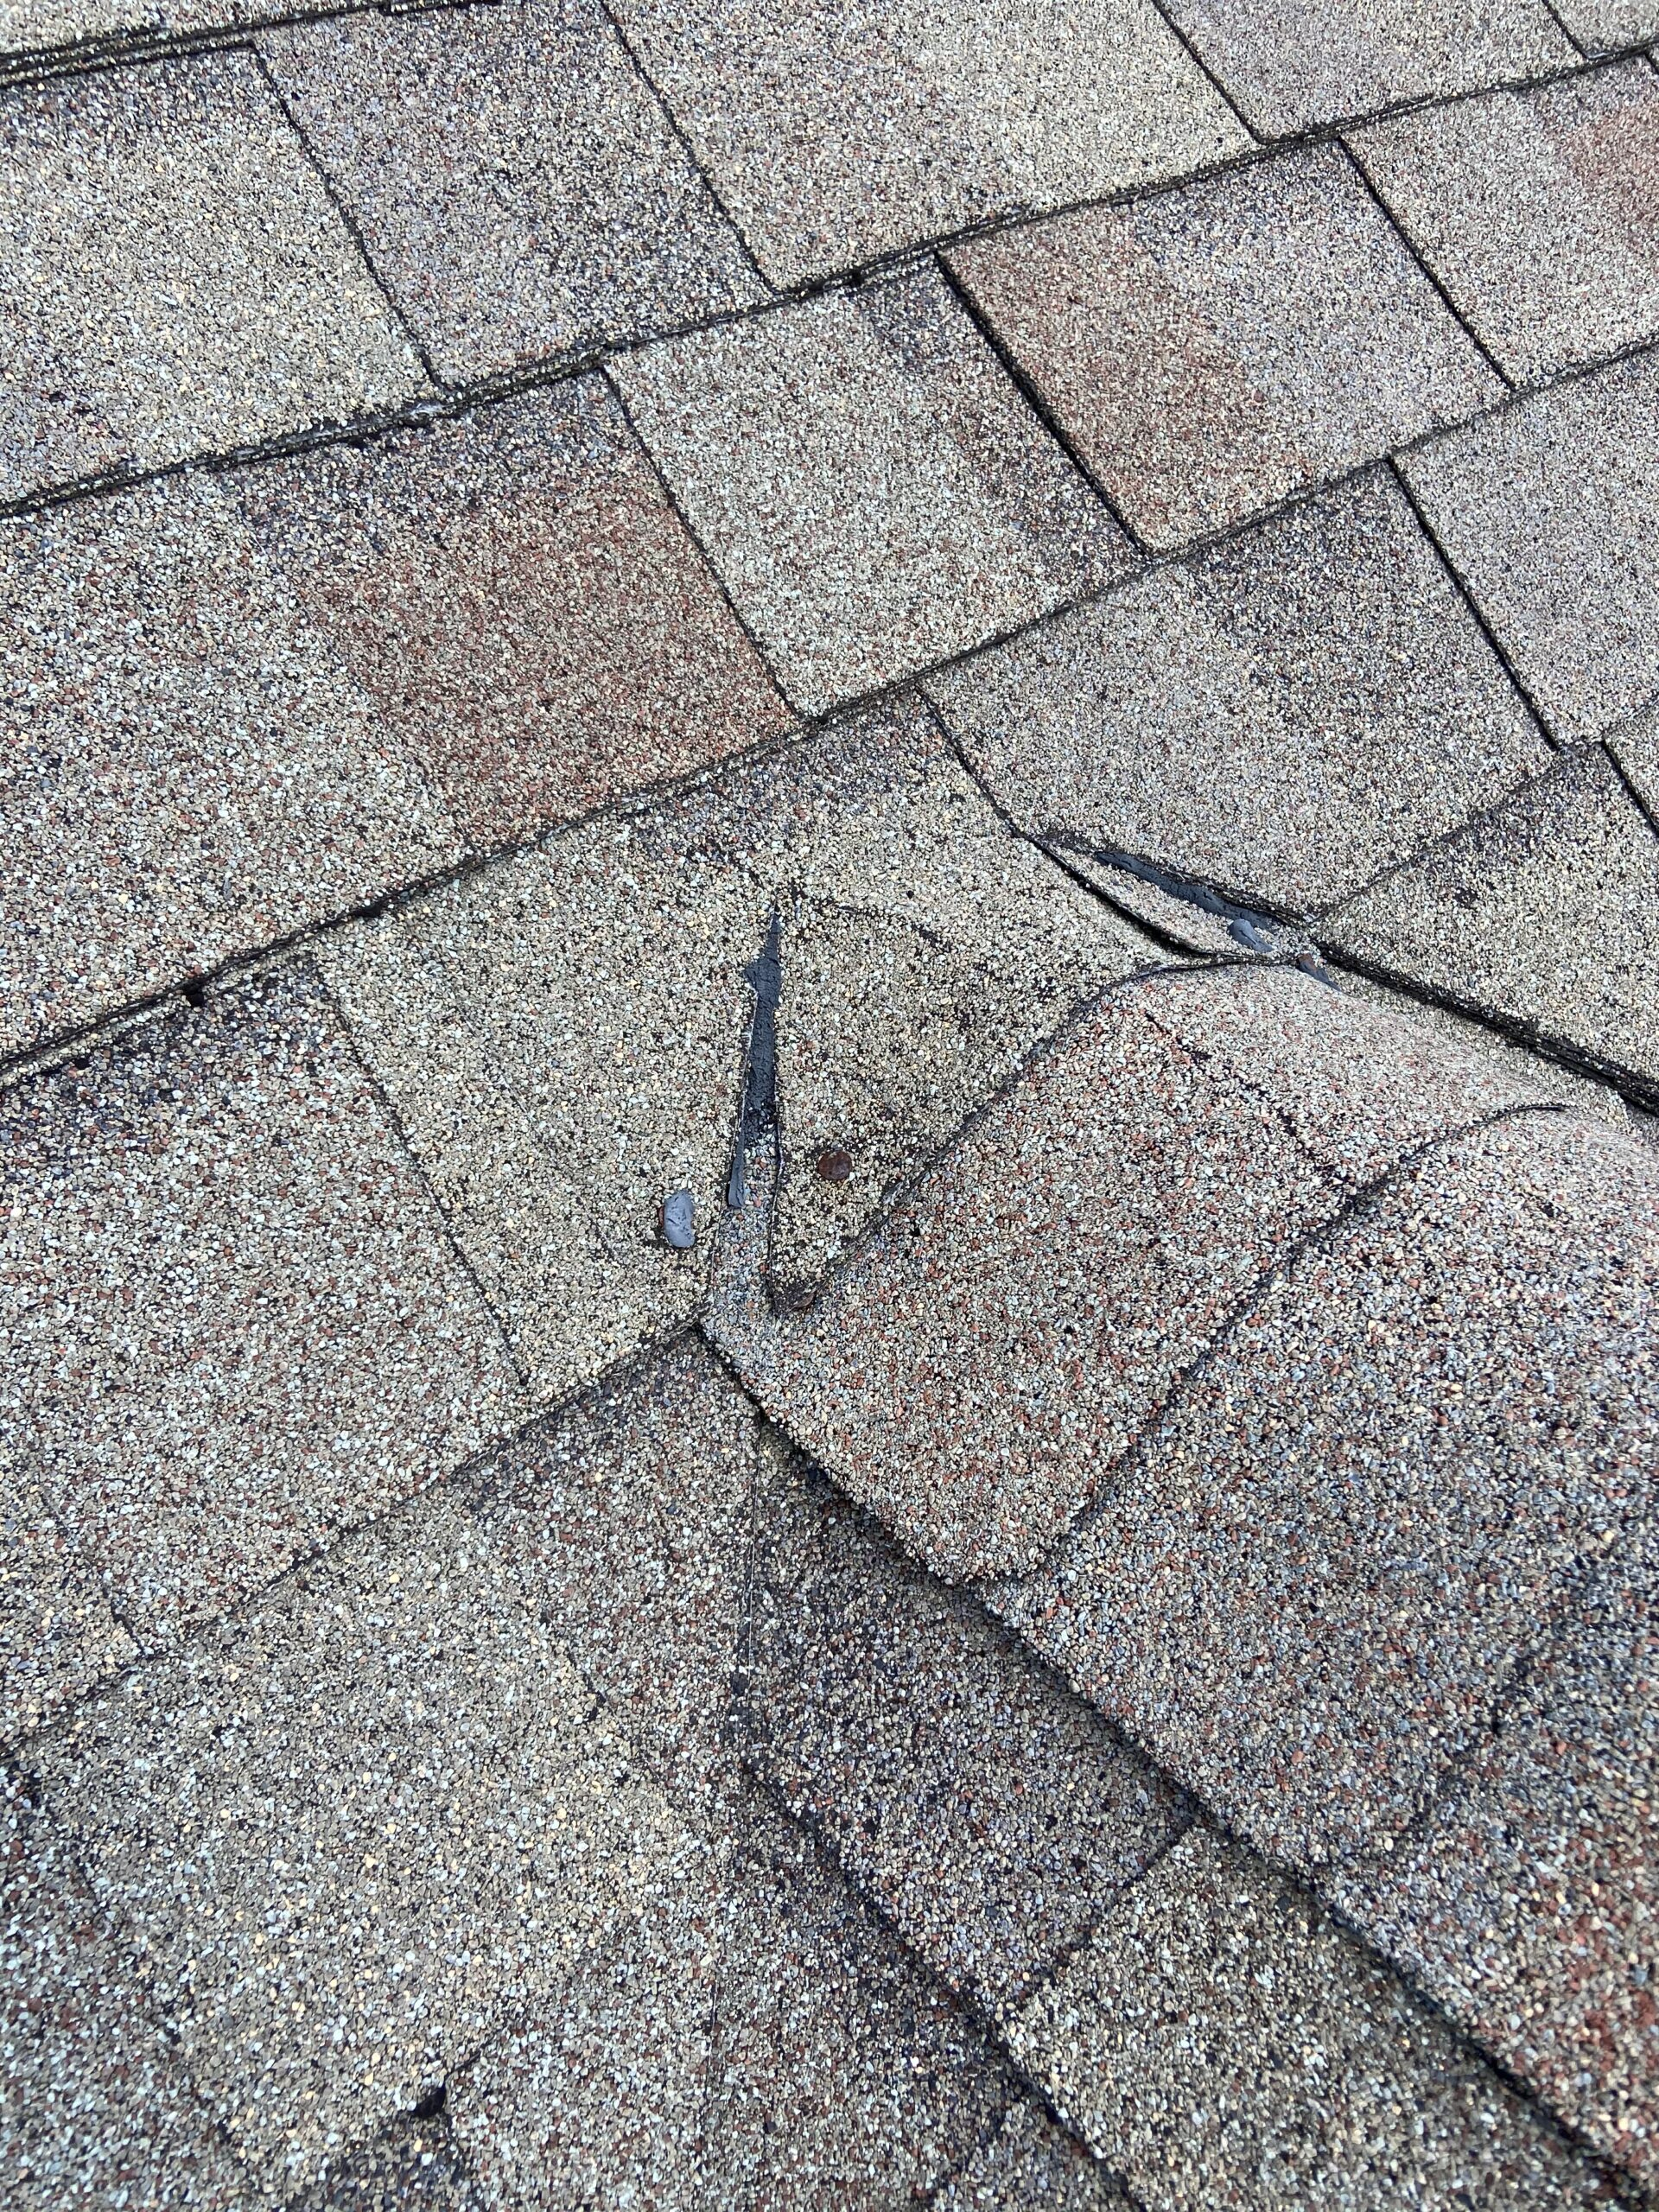 This is a part of a roof that has nails that are popping that should be causing roof leaks